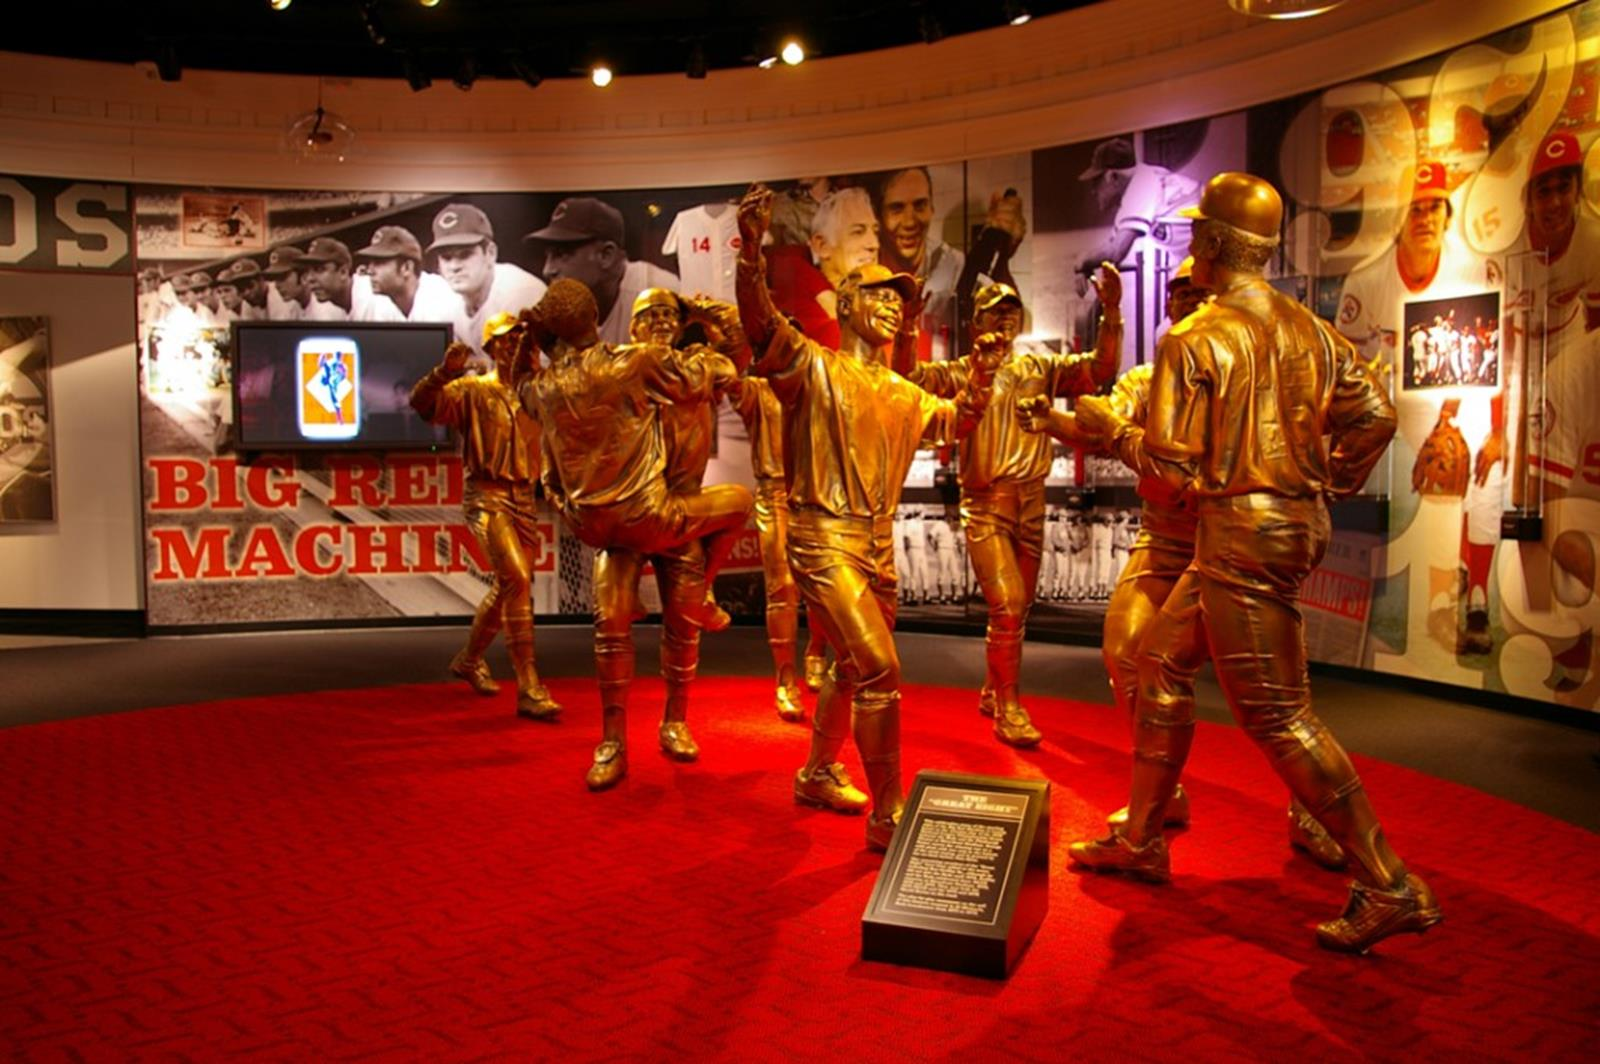 Cincinnati Reds Hall of Fame and Museum. Credit: Cincinnati Reds Hall of Fame